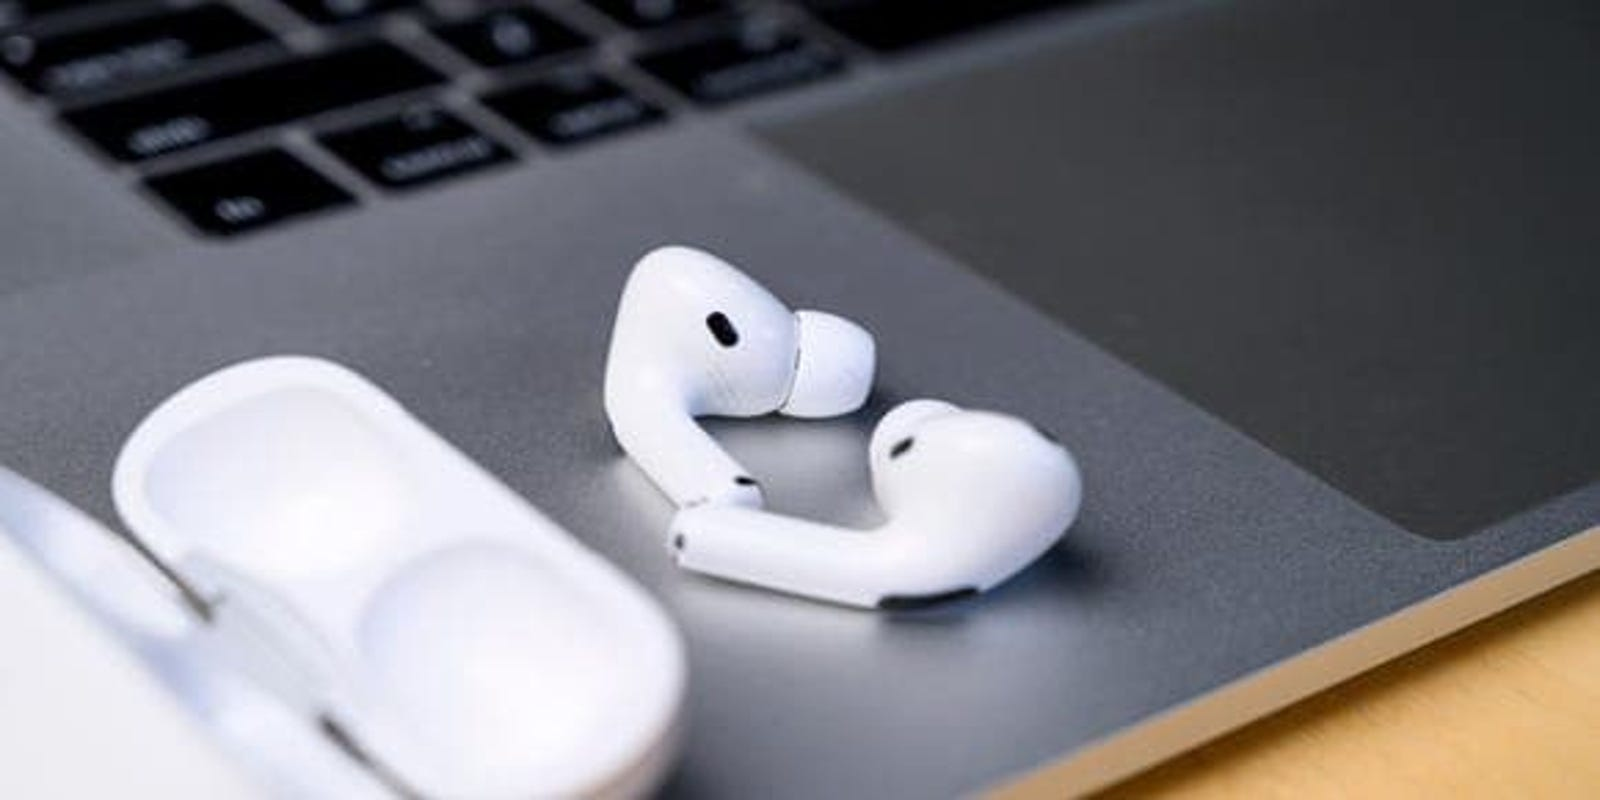 Black Friday 2020: The best AirPods deals right now